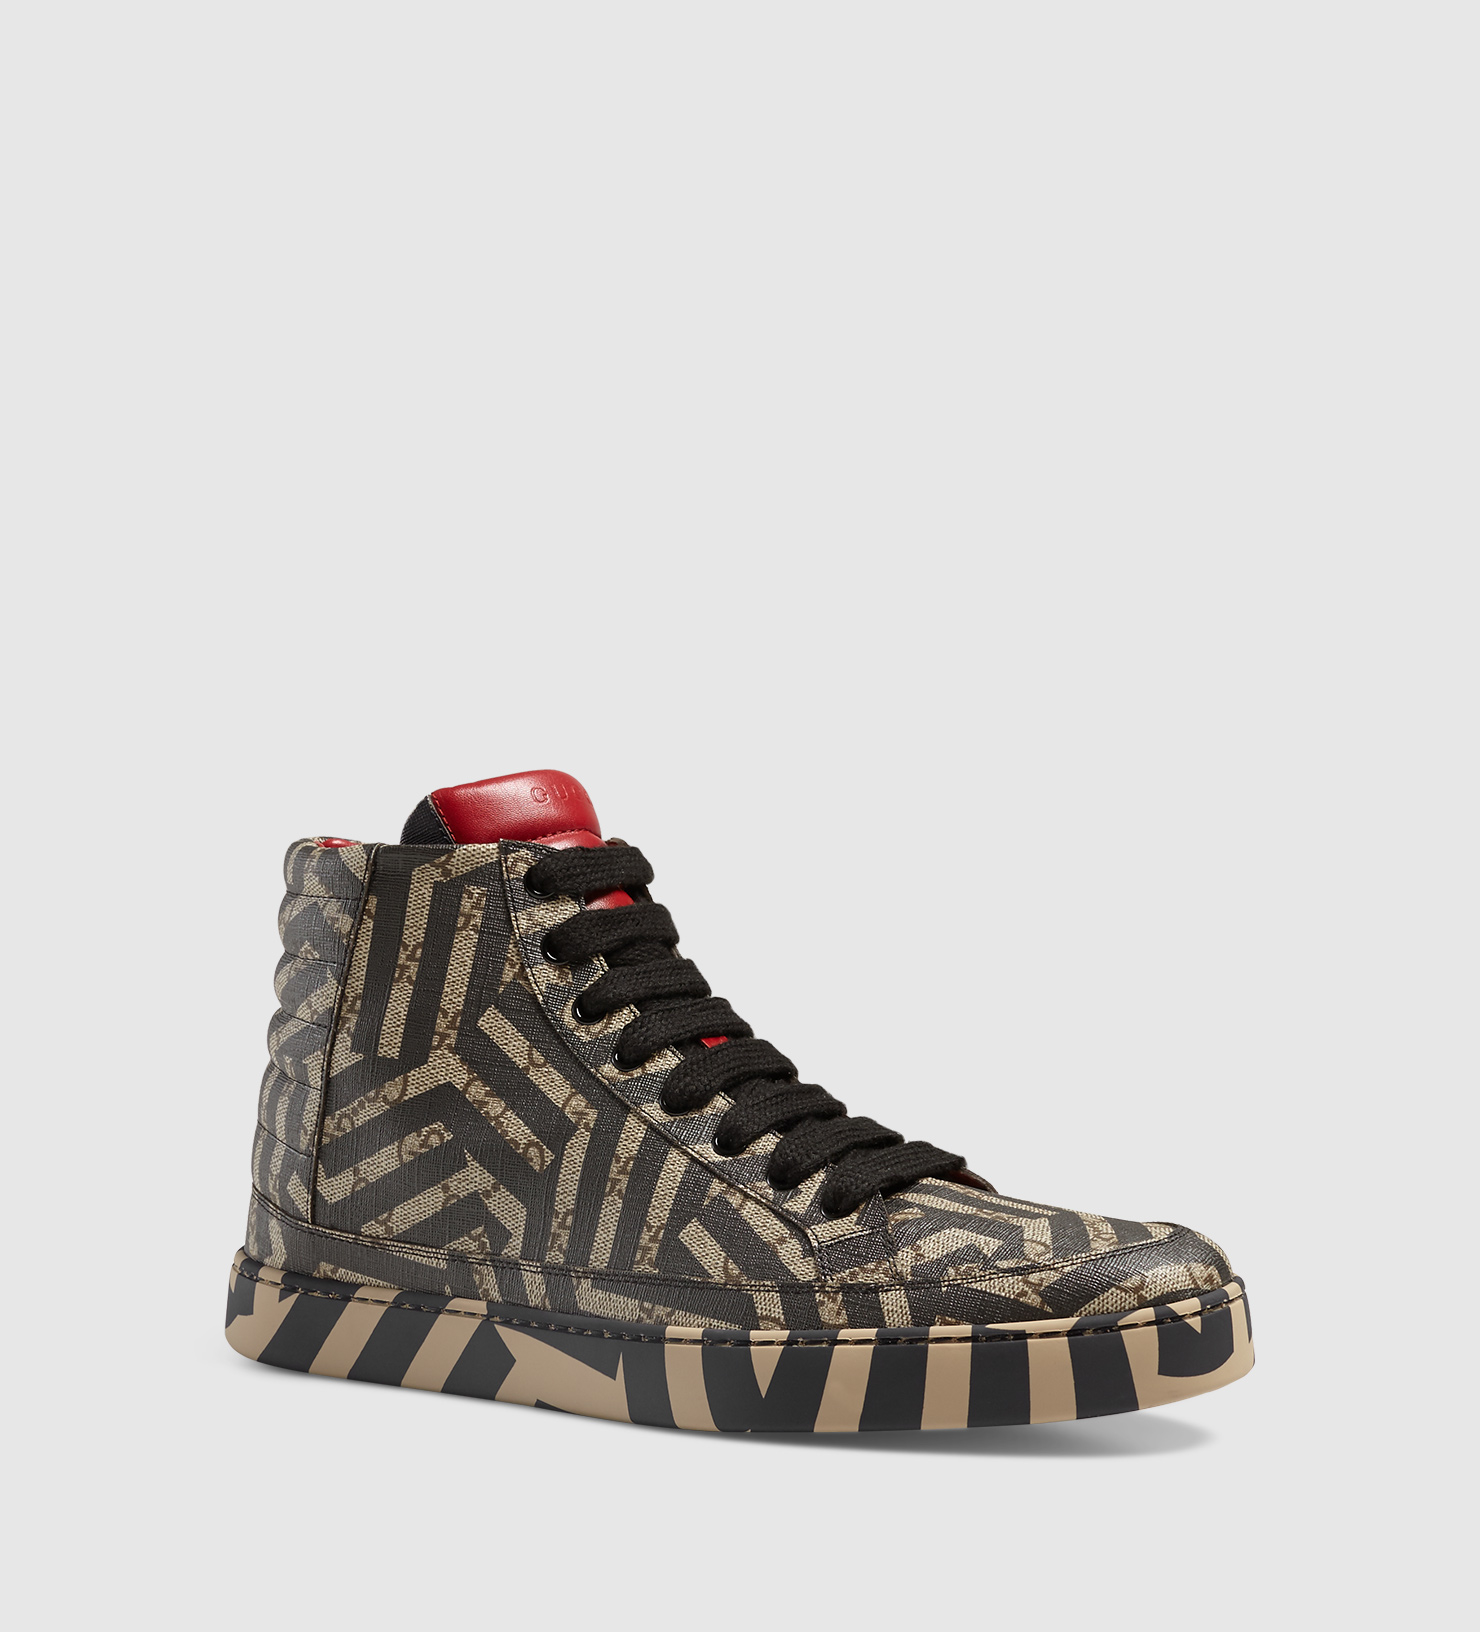 0a2bb4346 Gucci Gg Caleido High-top Sneaker in Brown for Men - Lyst